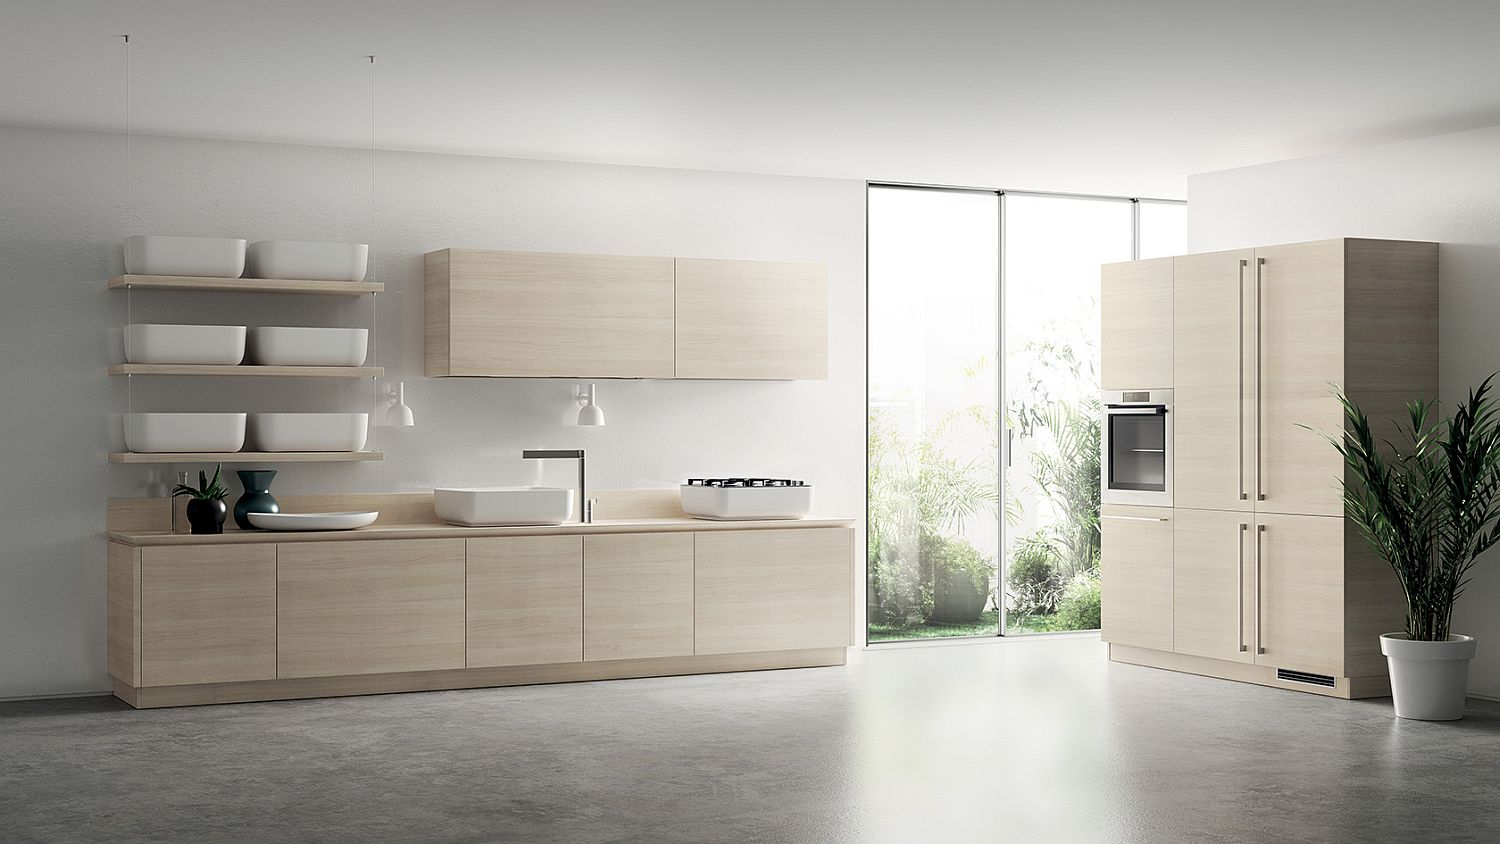 Ingenious and minimal kitchen storage ideas